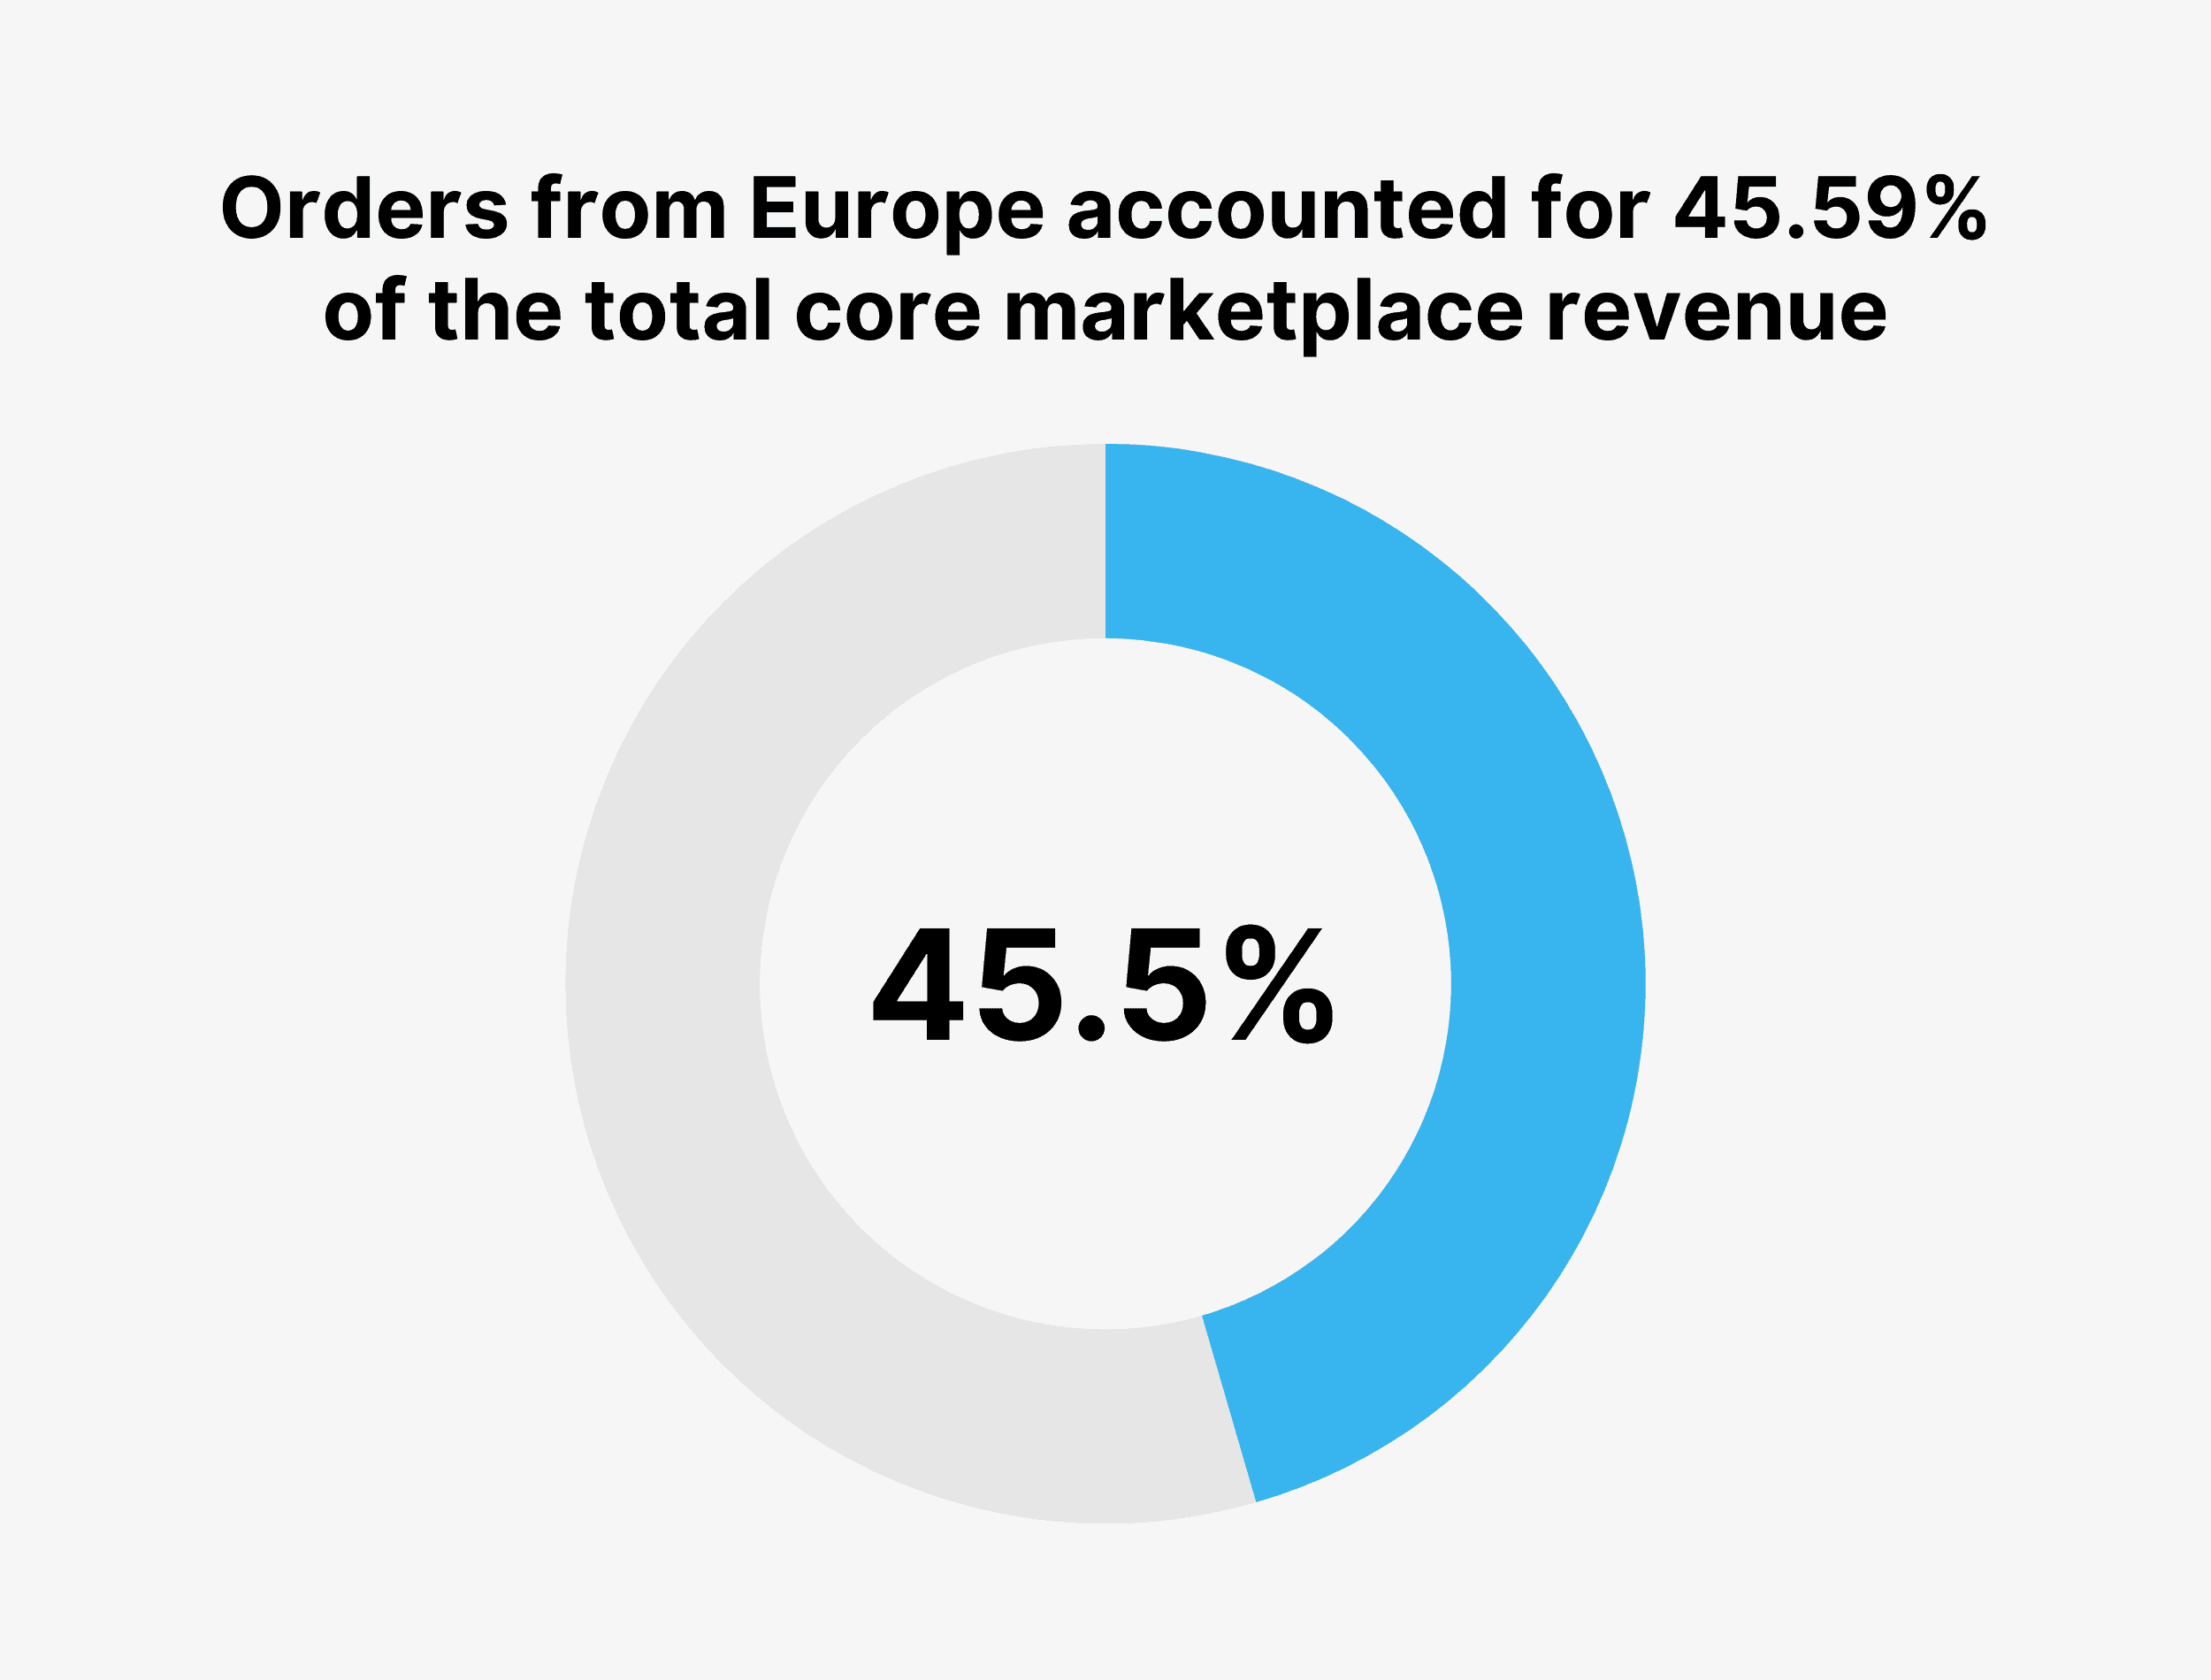 Orders from Europe accounted for 45.59% of the total core marketplace revenue